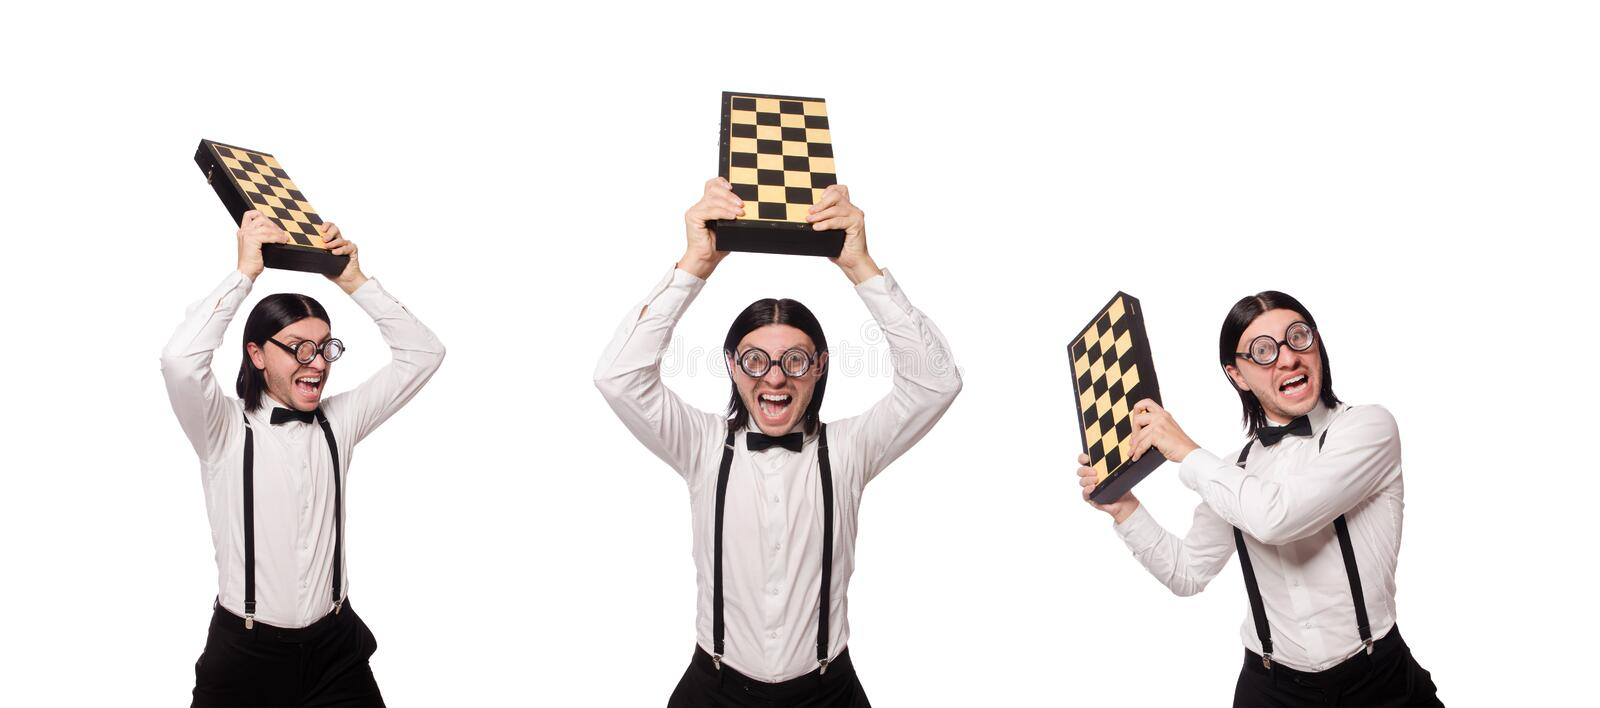 The nerd chess player isolated on white royalty free stock image